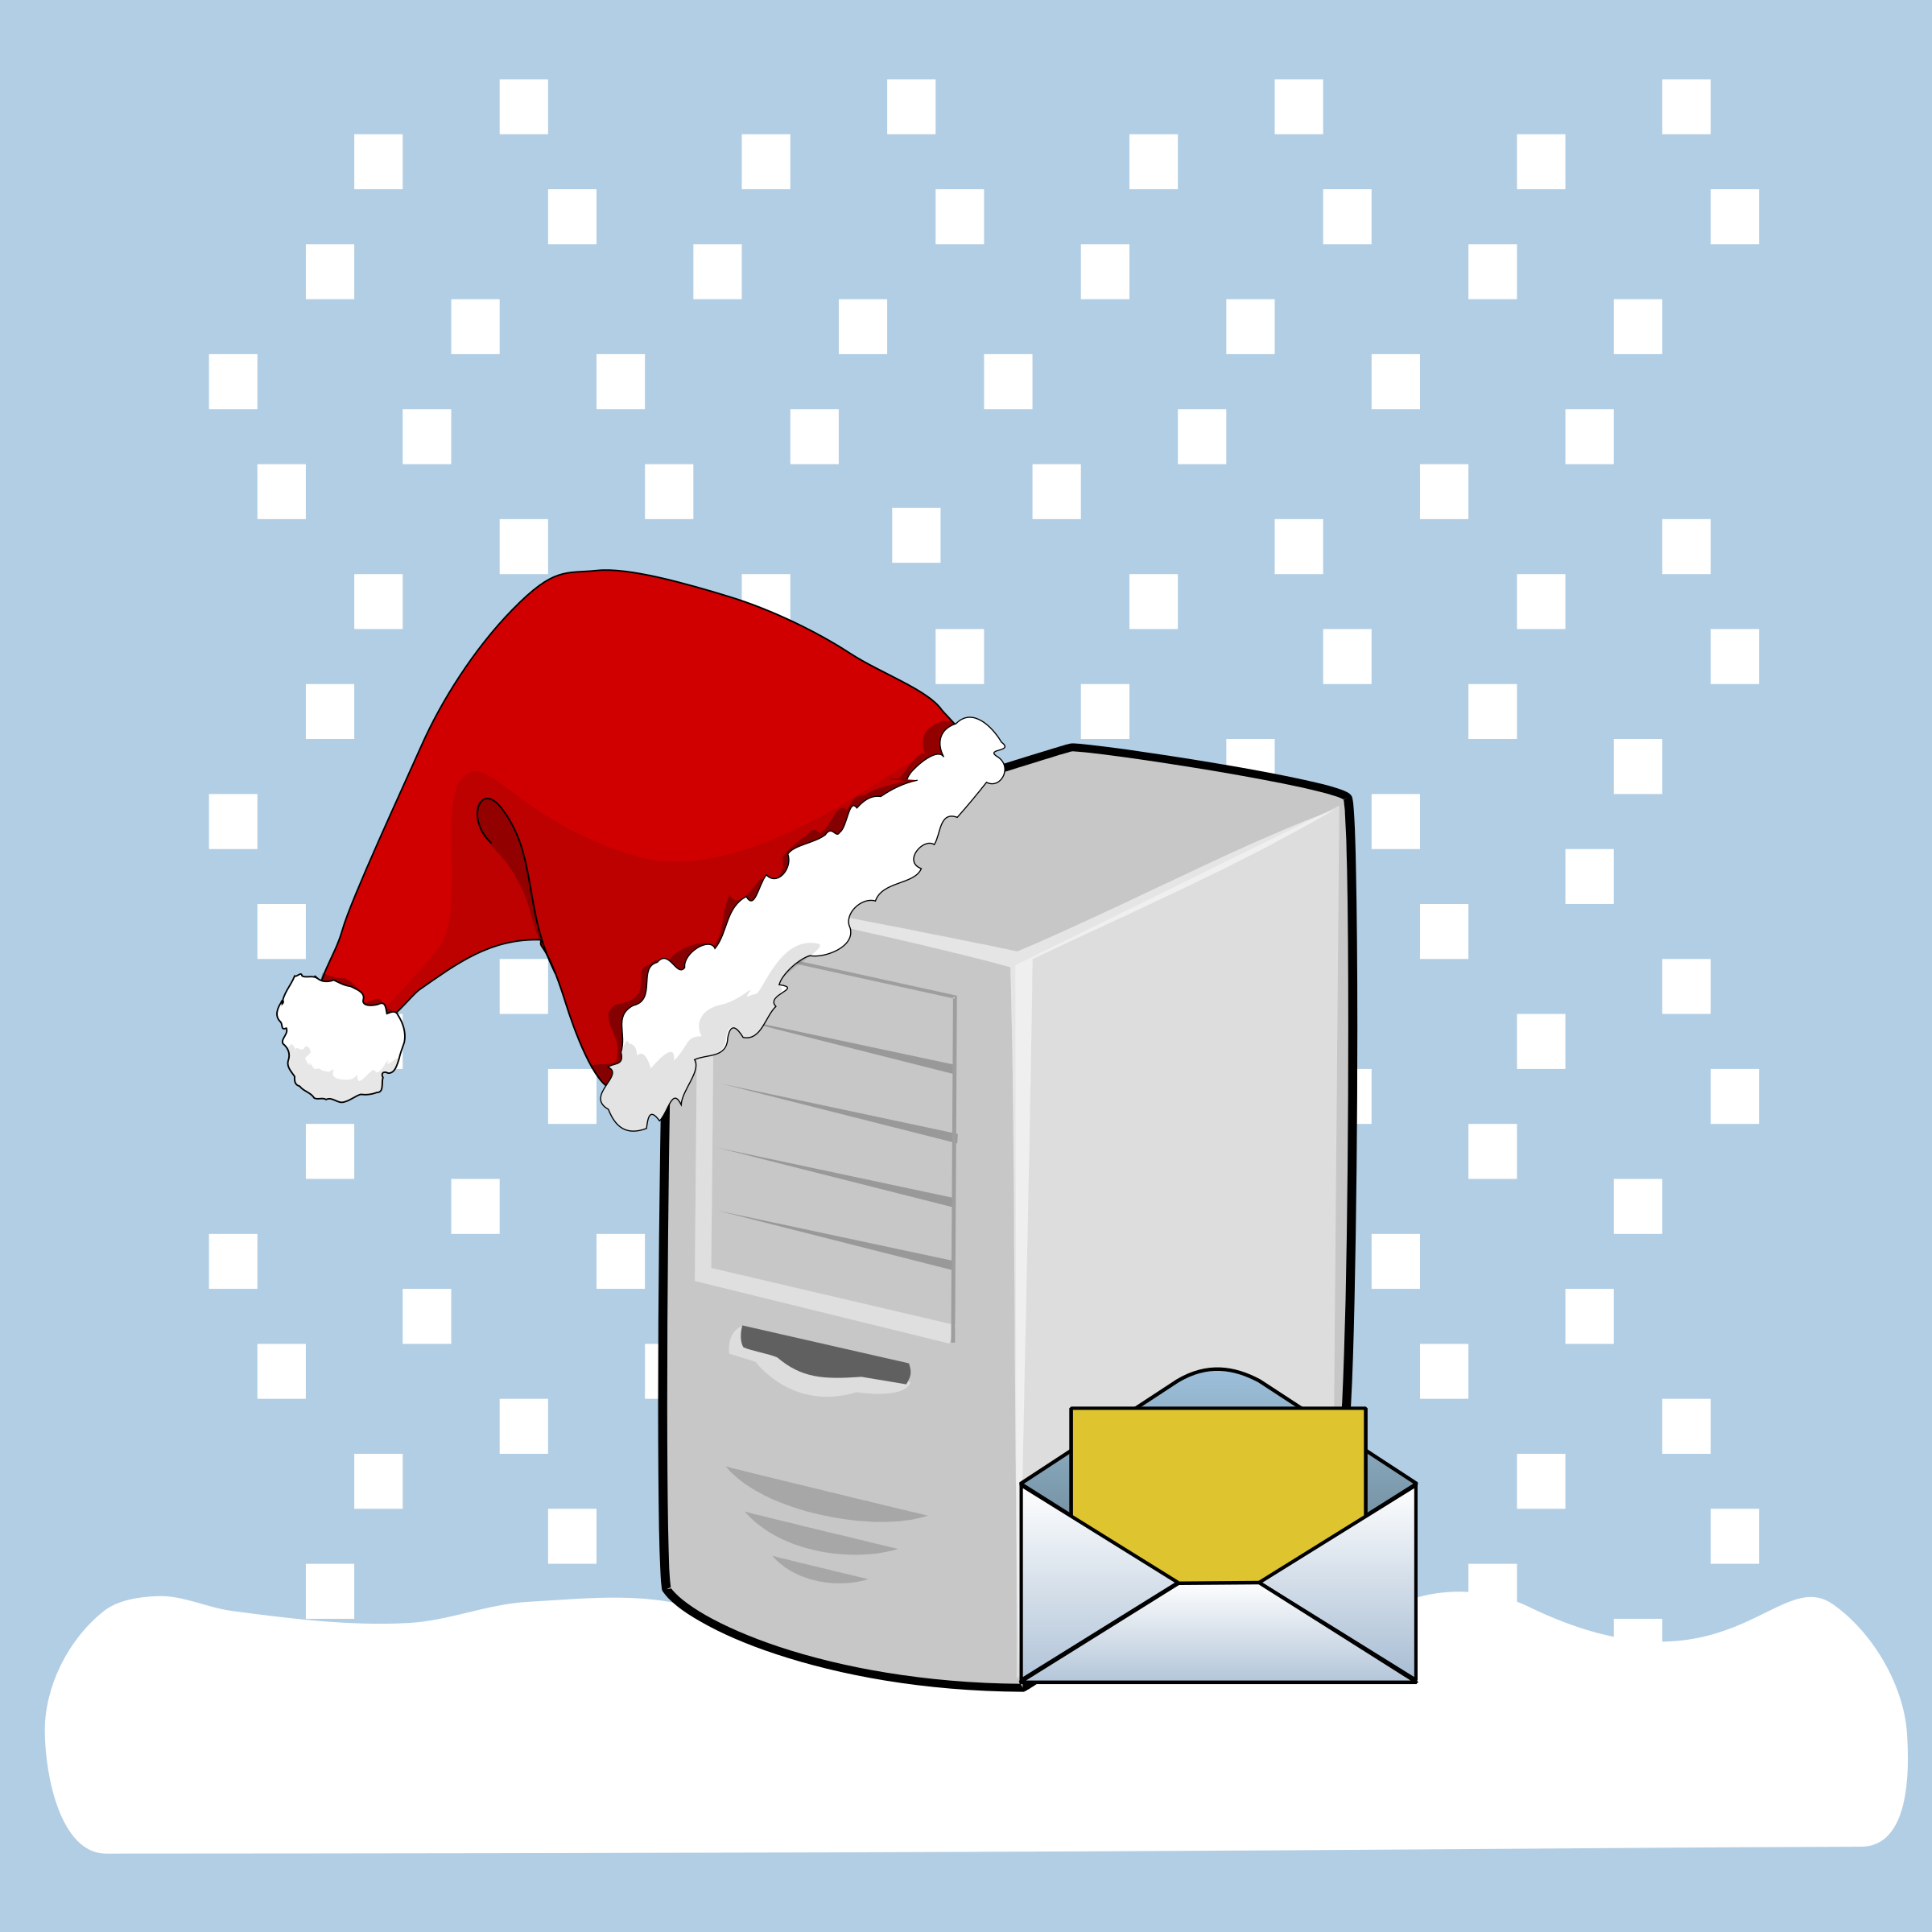 Email server big image. Wednesday clipart winter